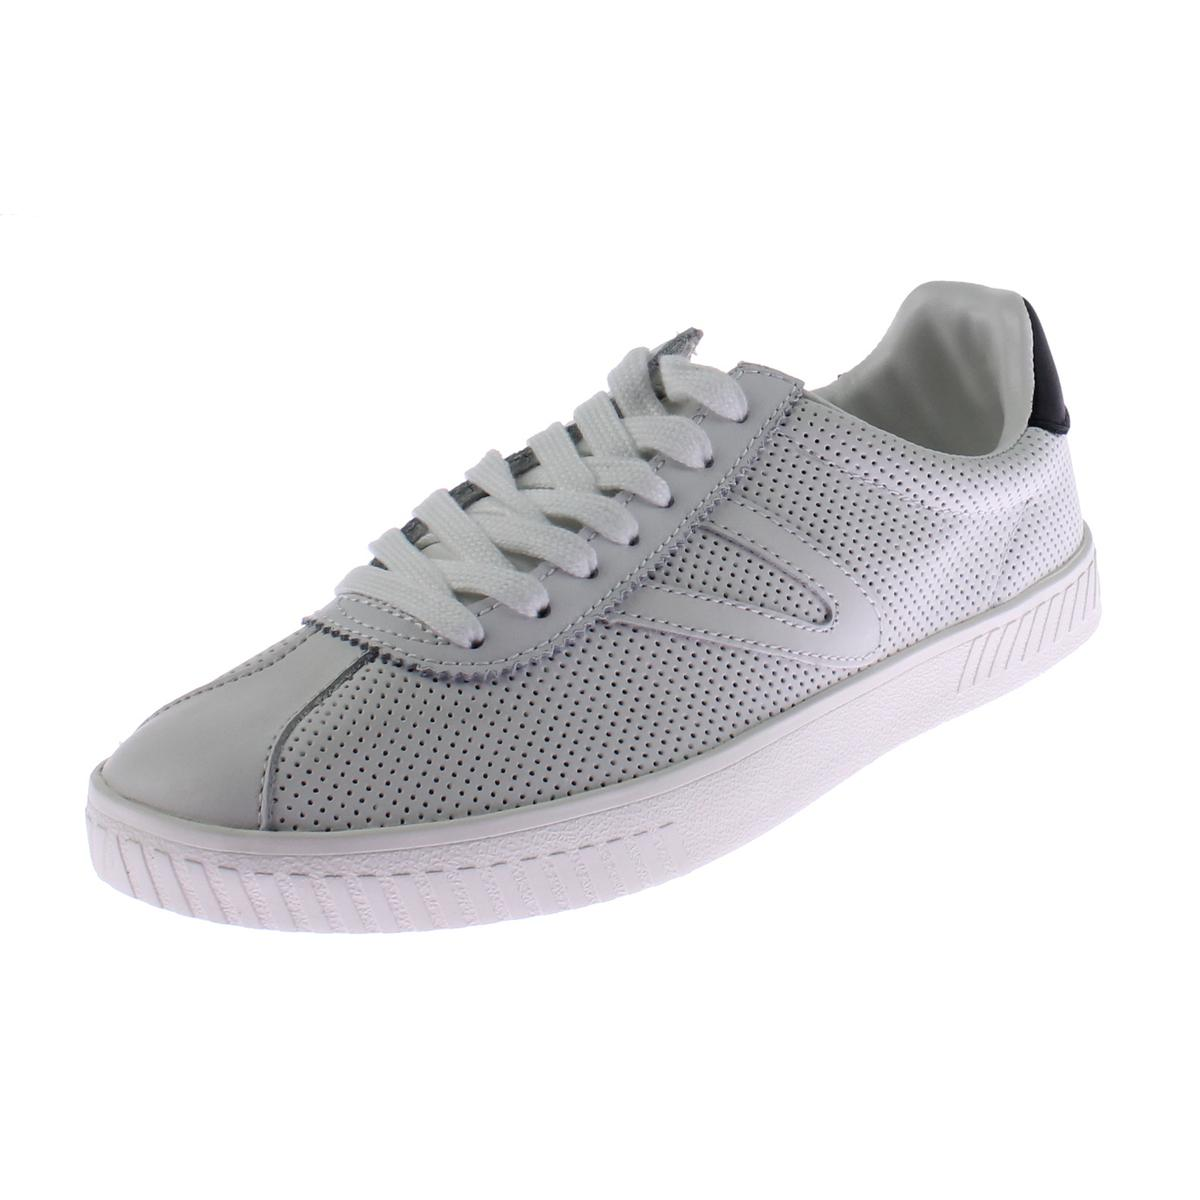 Tretorn Mens Camden 2 Leather Perforated Fashion Sneakers by Tretorn